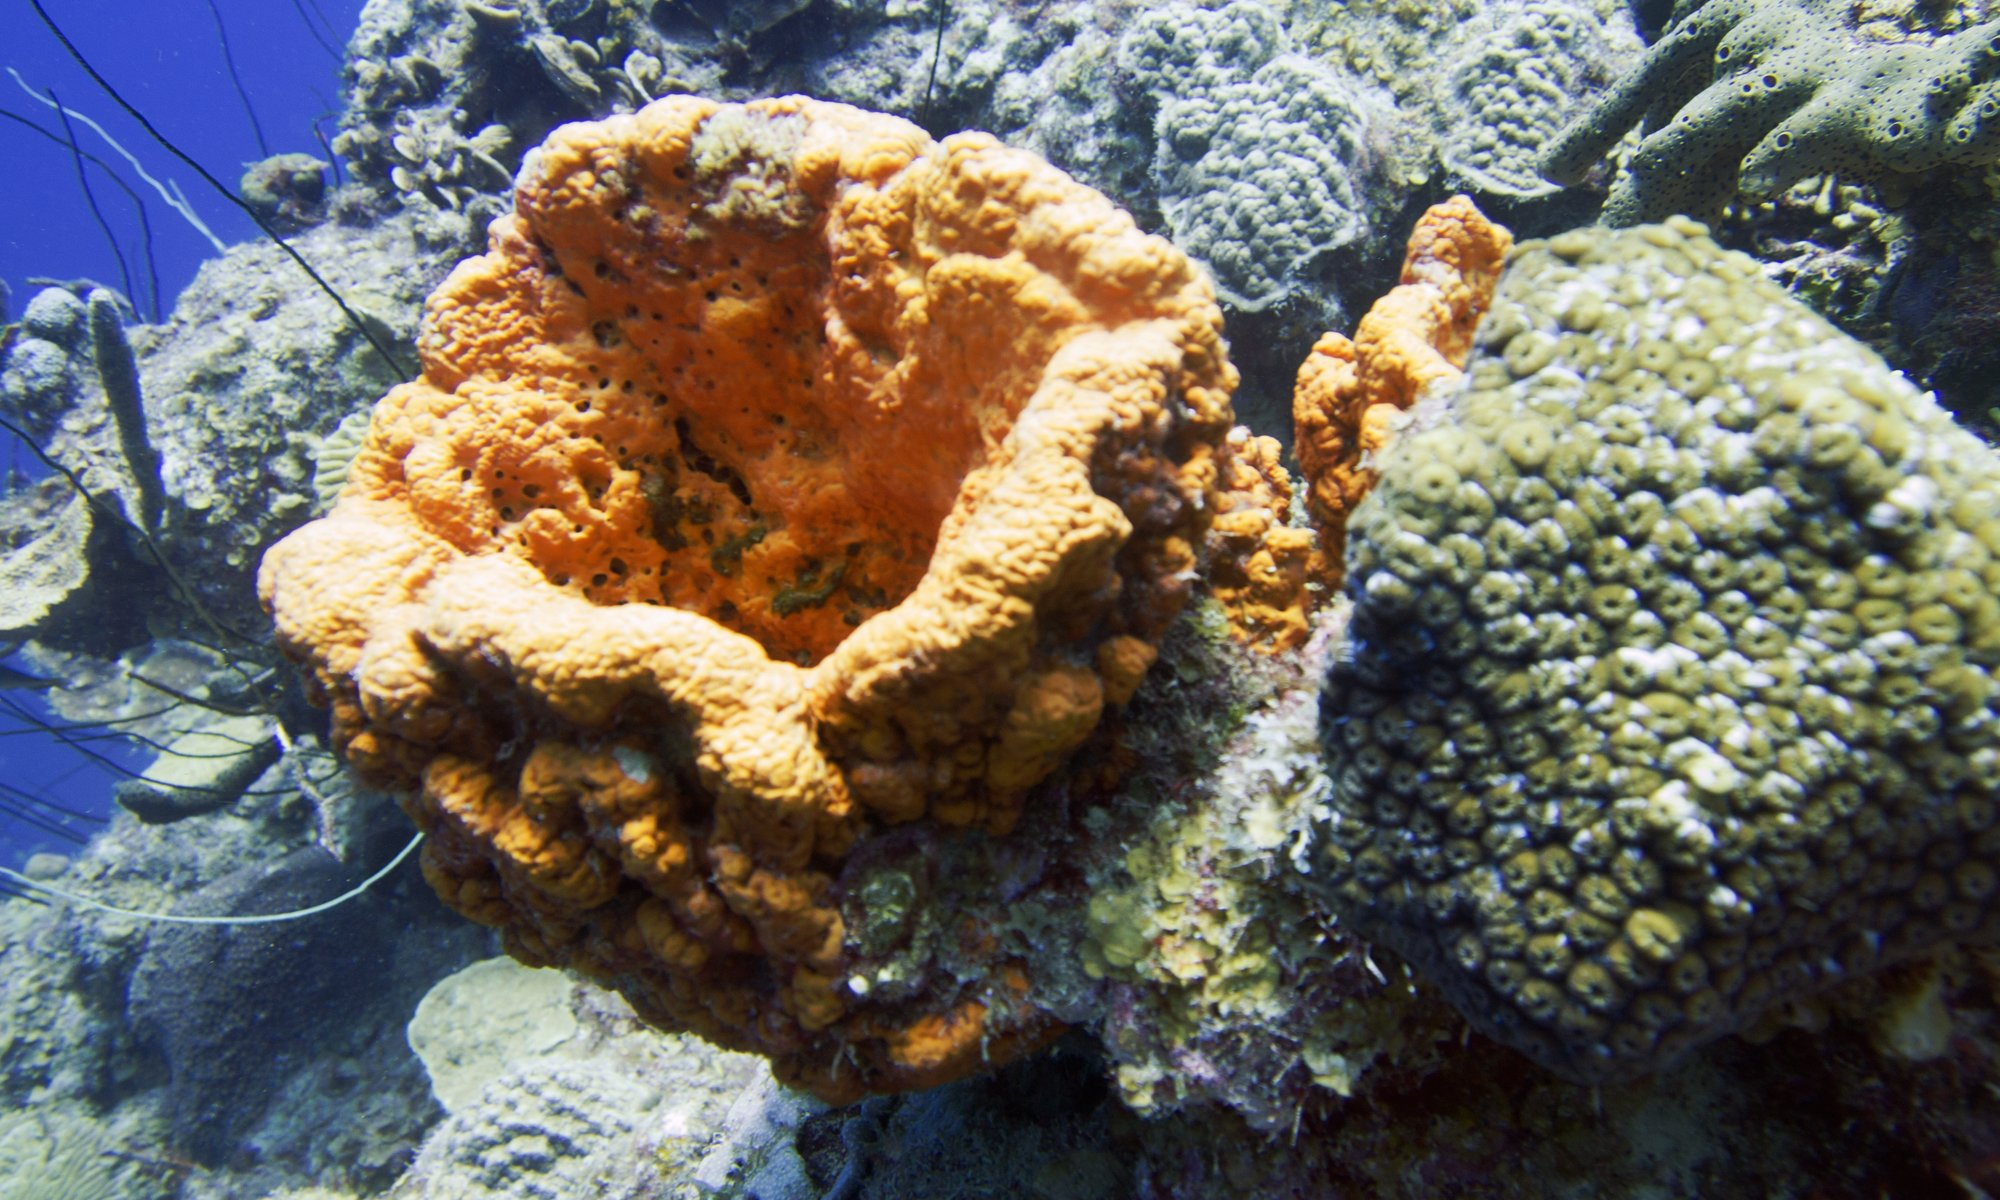 Underwater Coral Curacao